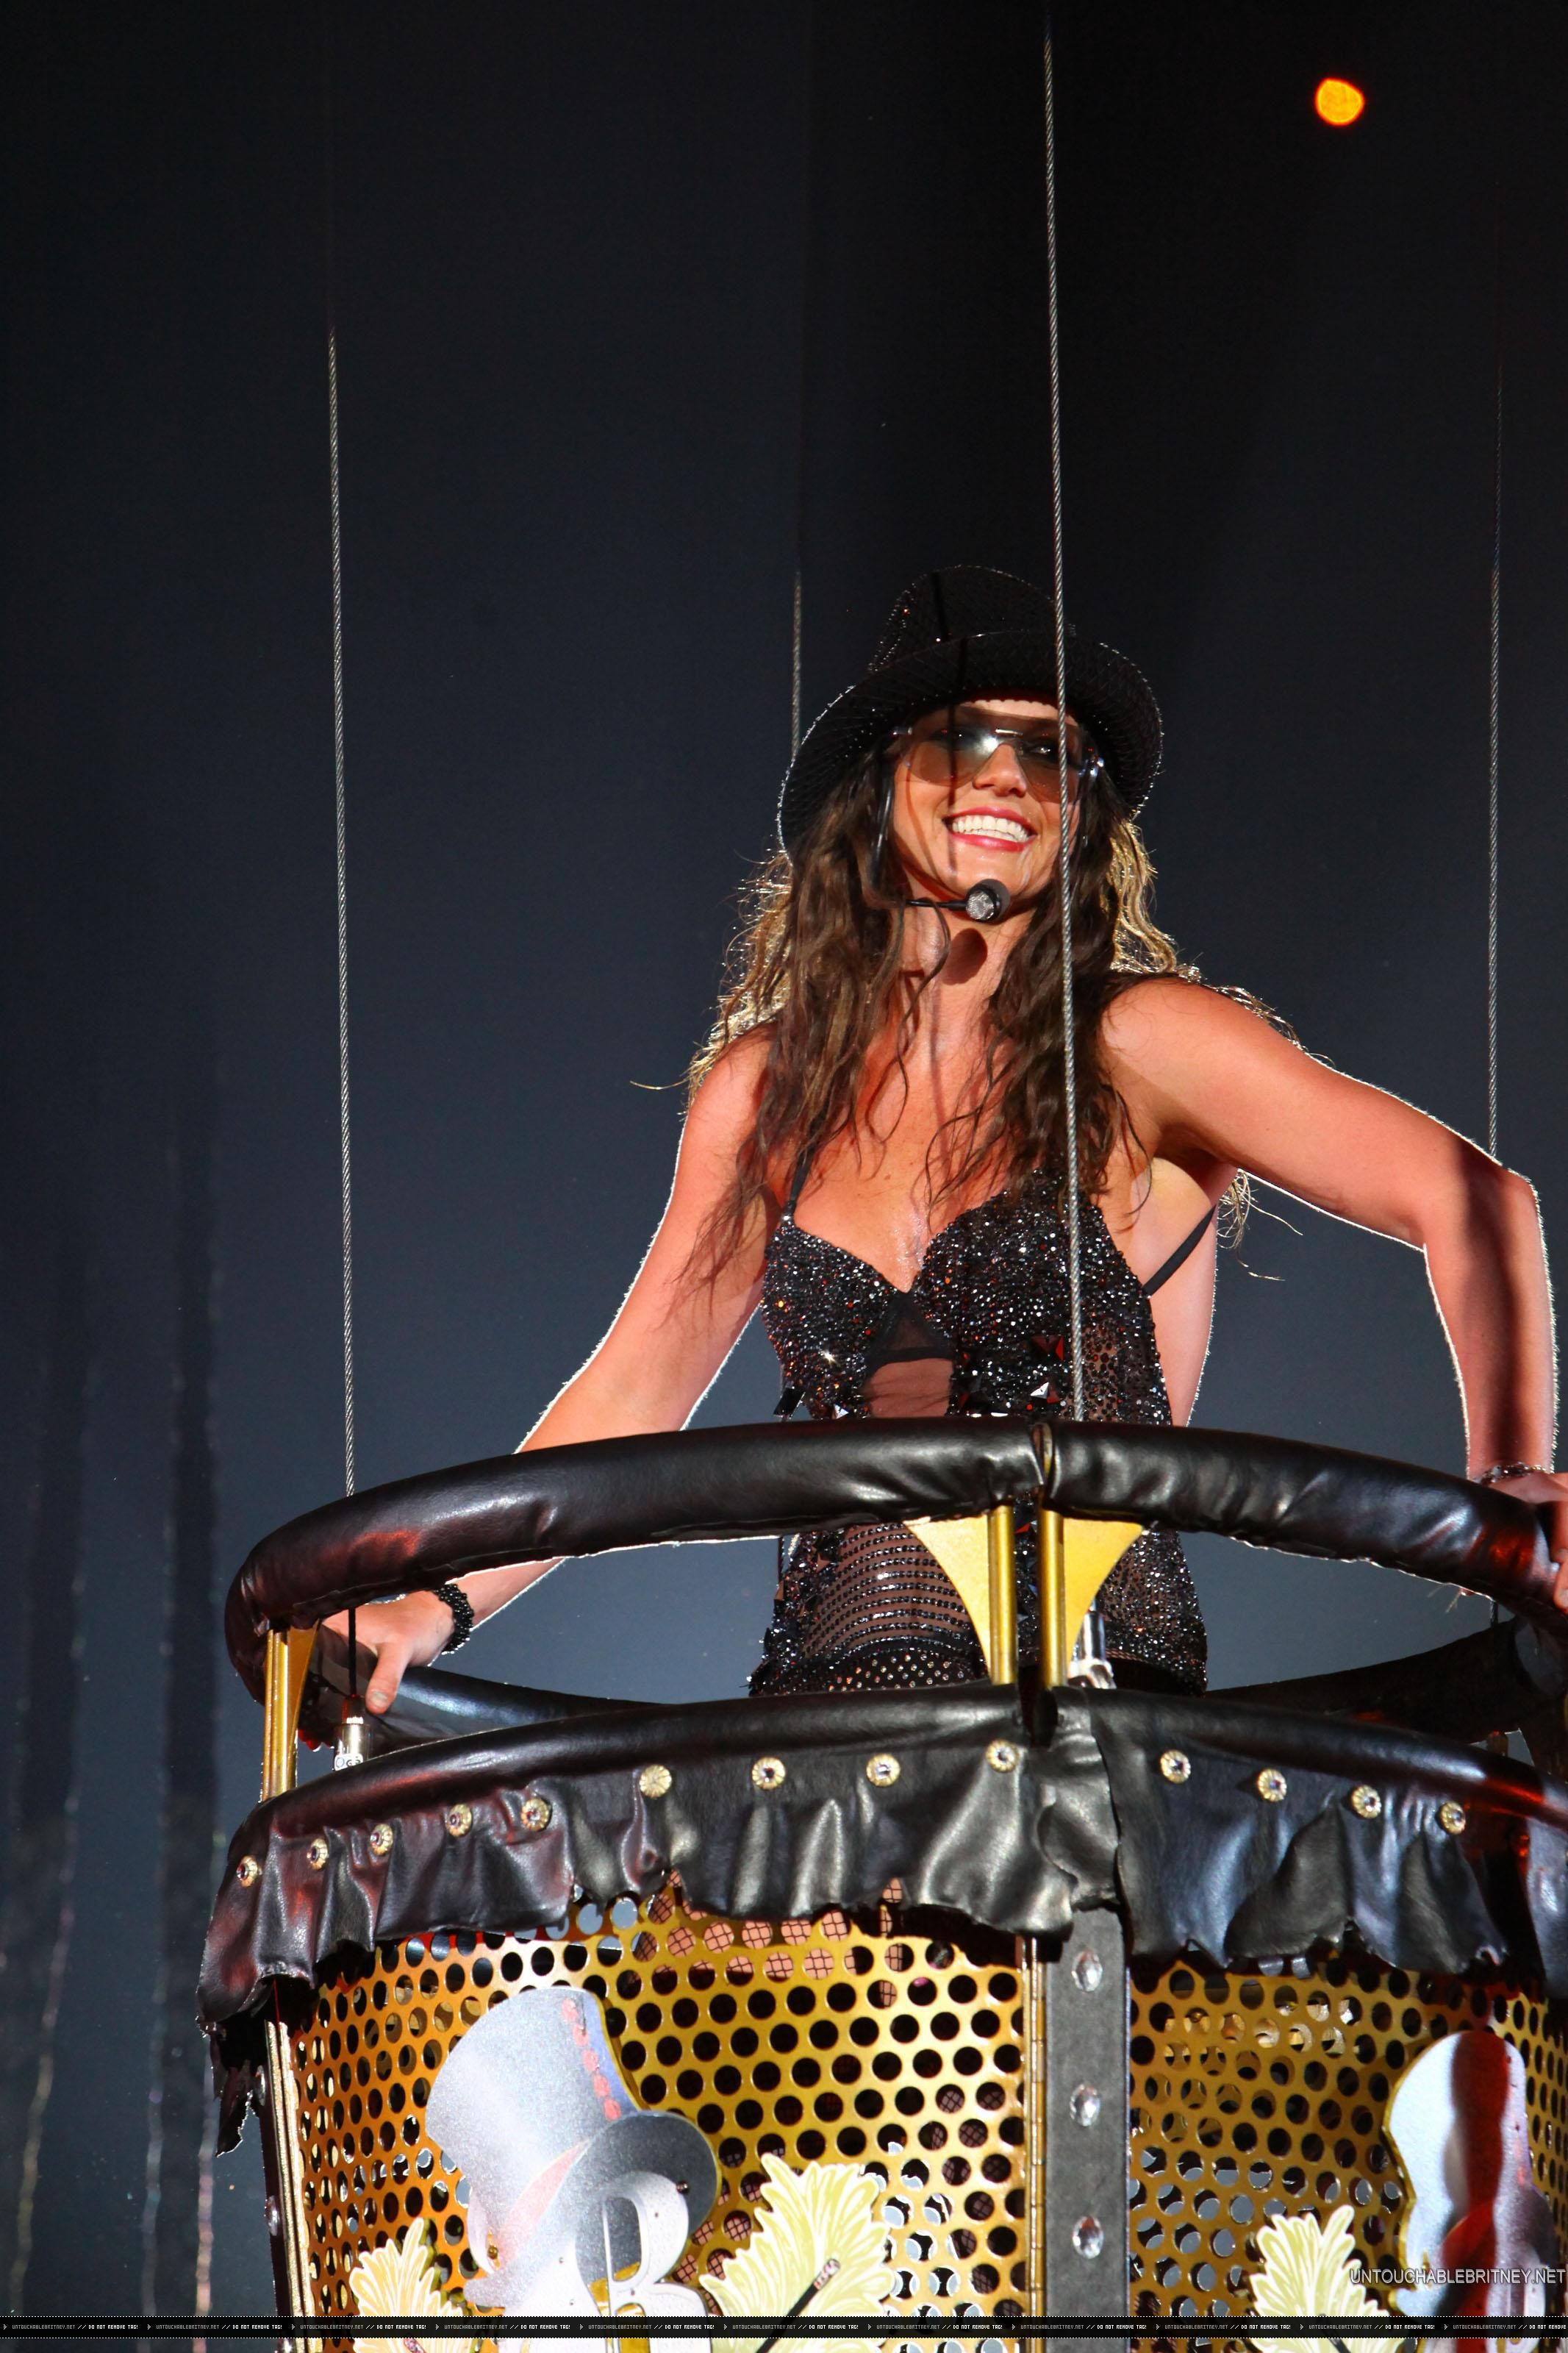 The Circus Starring Britney Spears - Wikipedia